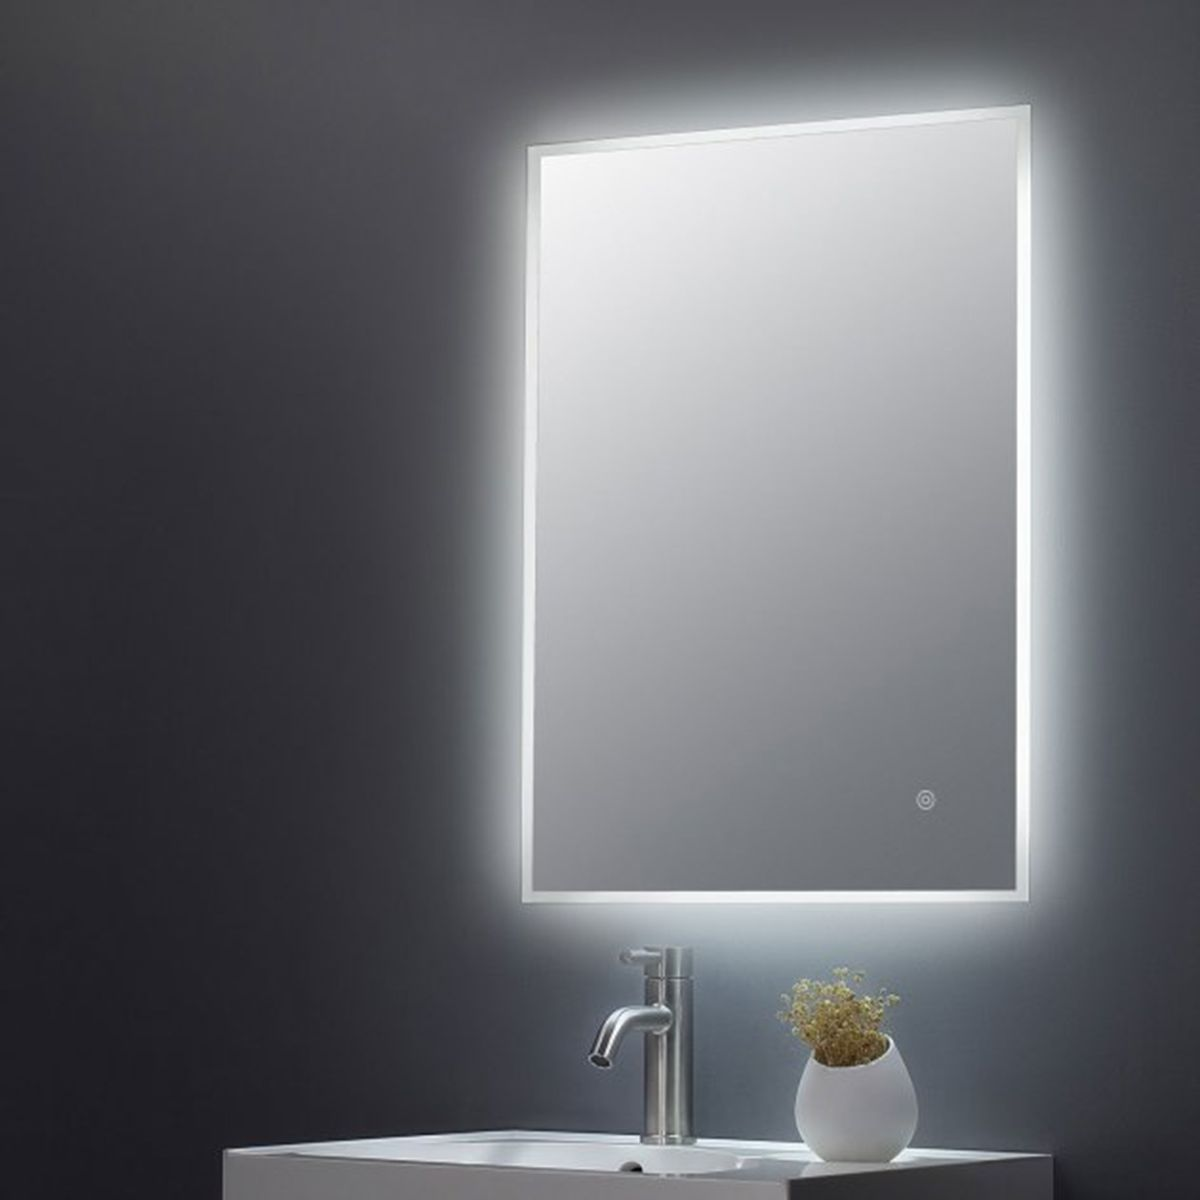 Hudson Reed 700 x 500 Ambient Mirror1